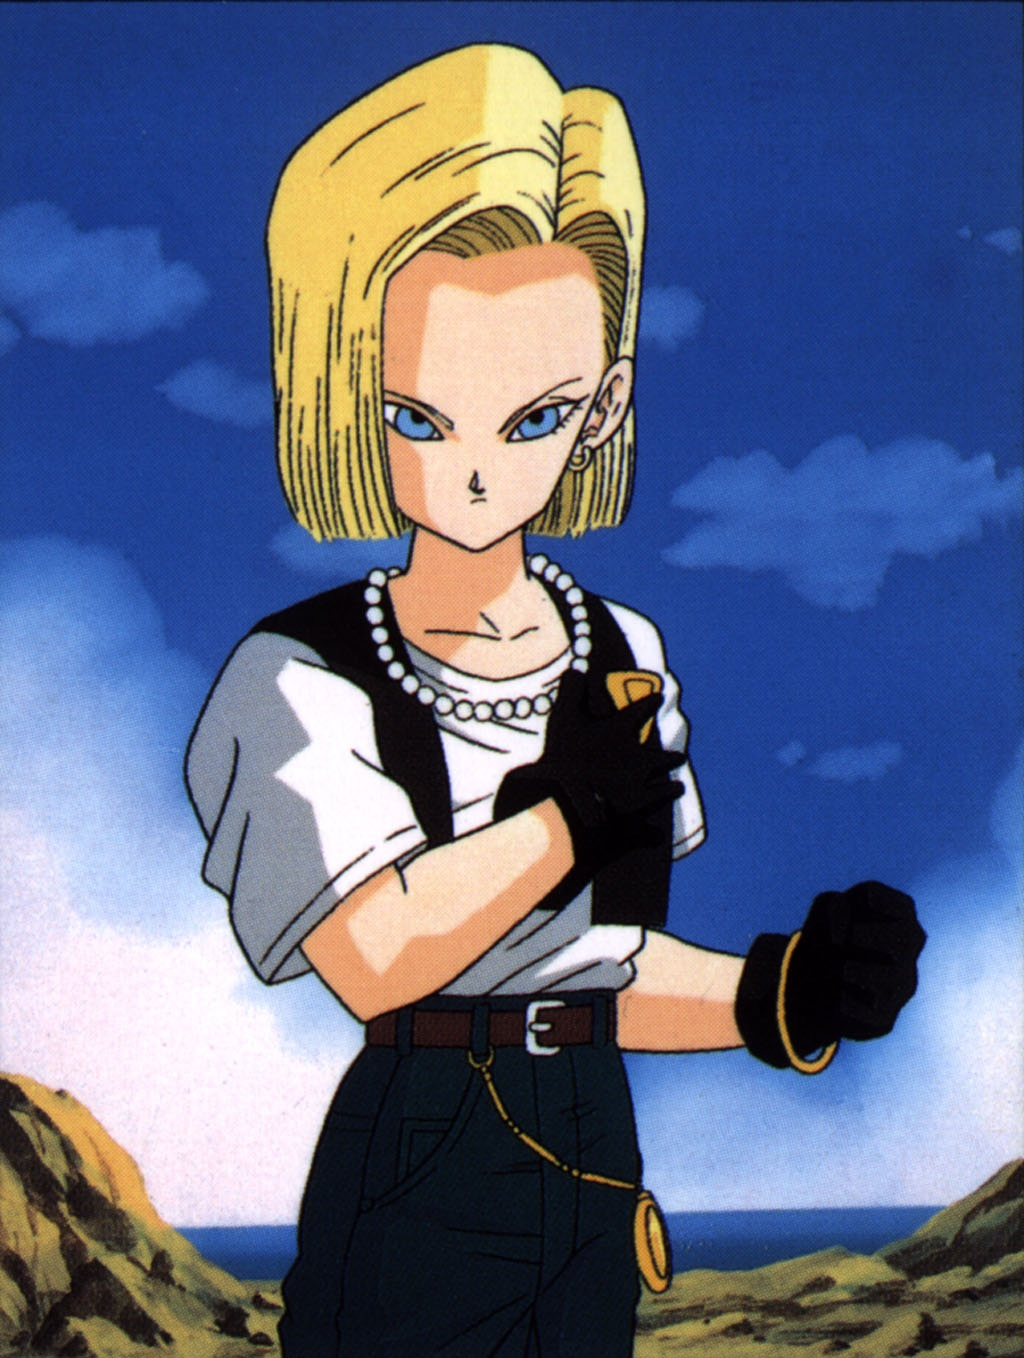 Ahh Android 18...a much needed female regular, who was actually pretty damn good. Kept me watching though a lot of the screaming hairy guys :D